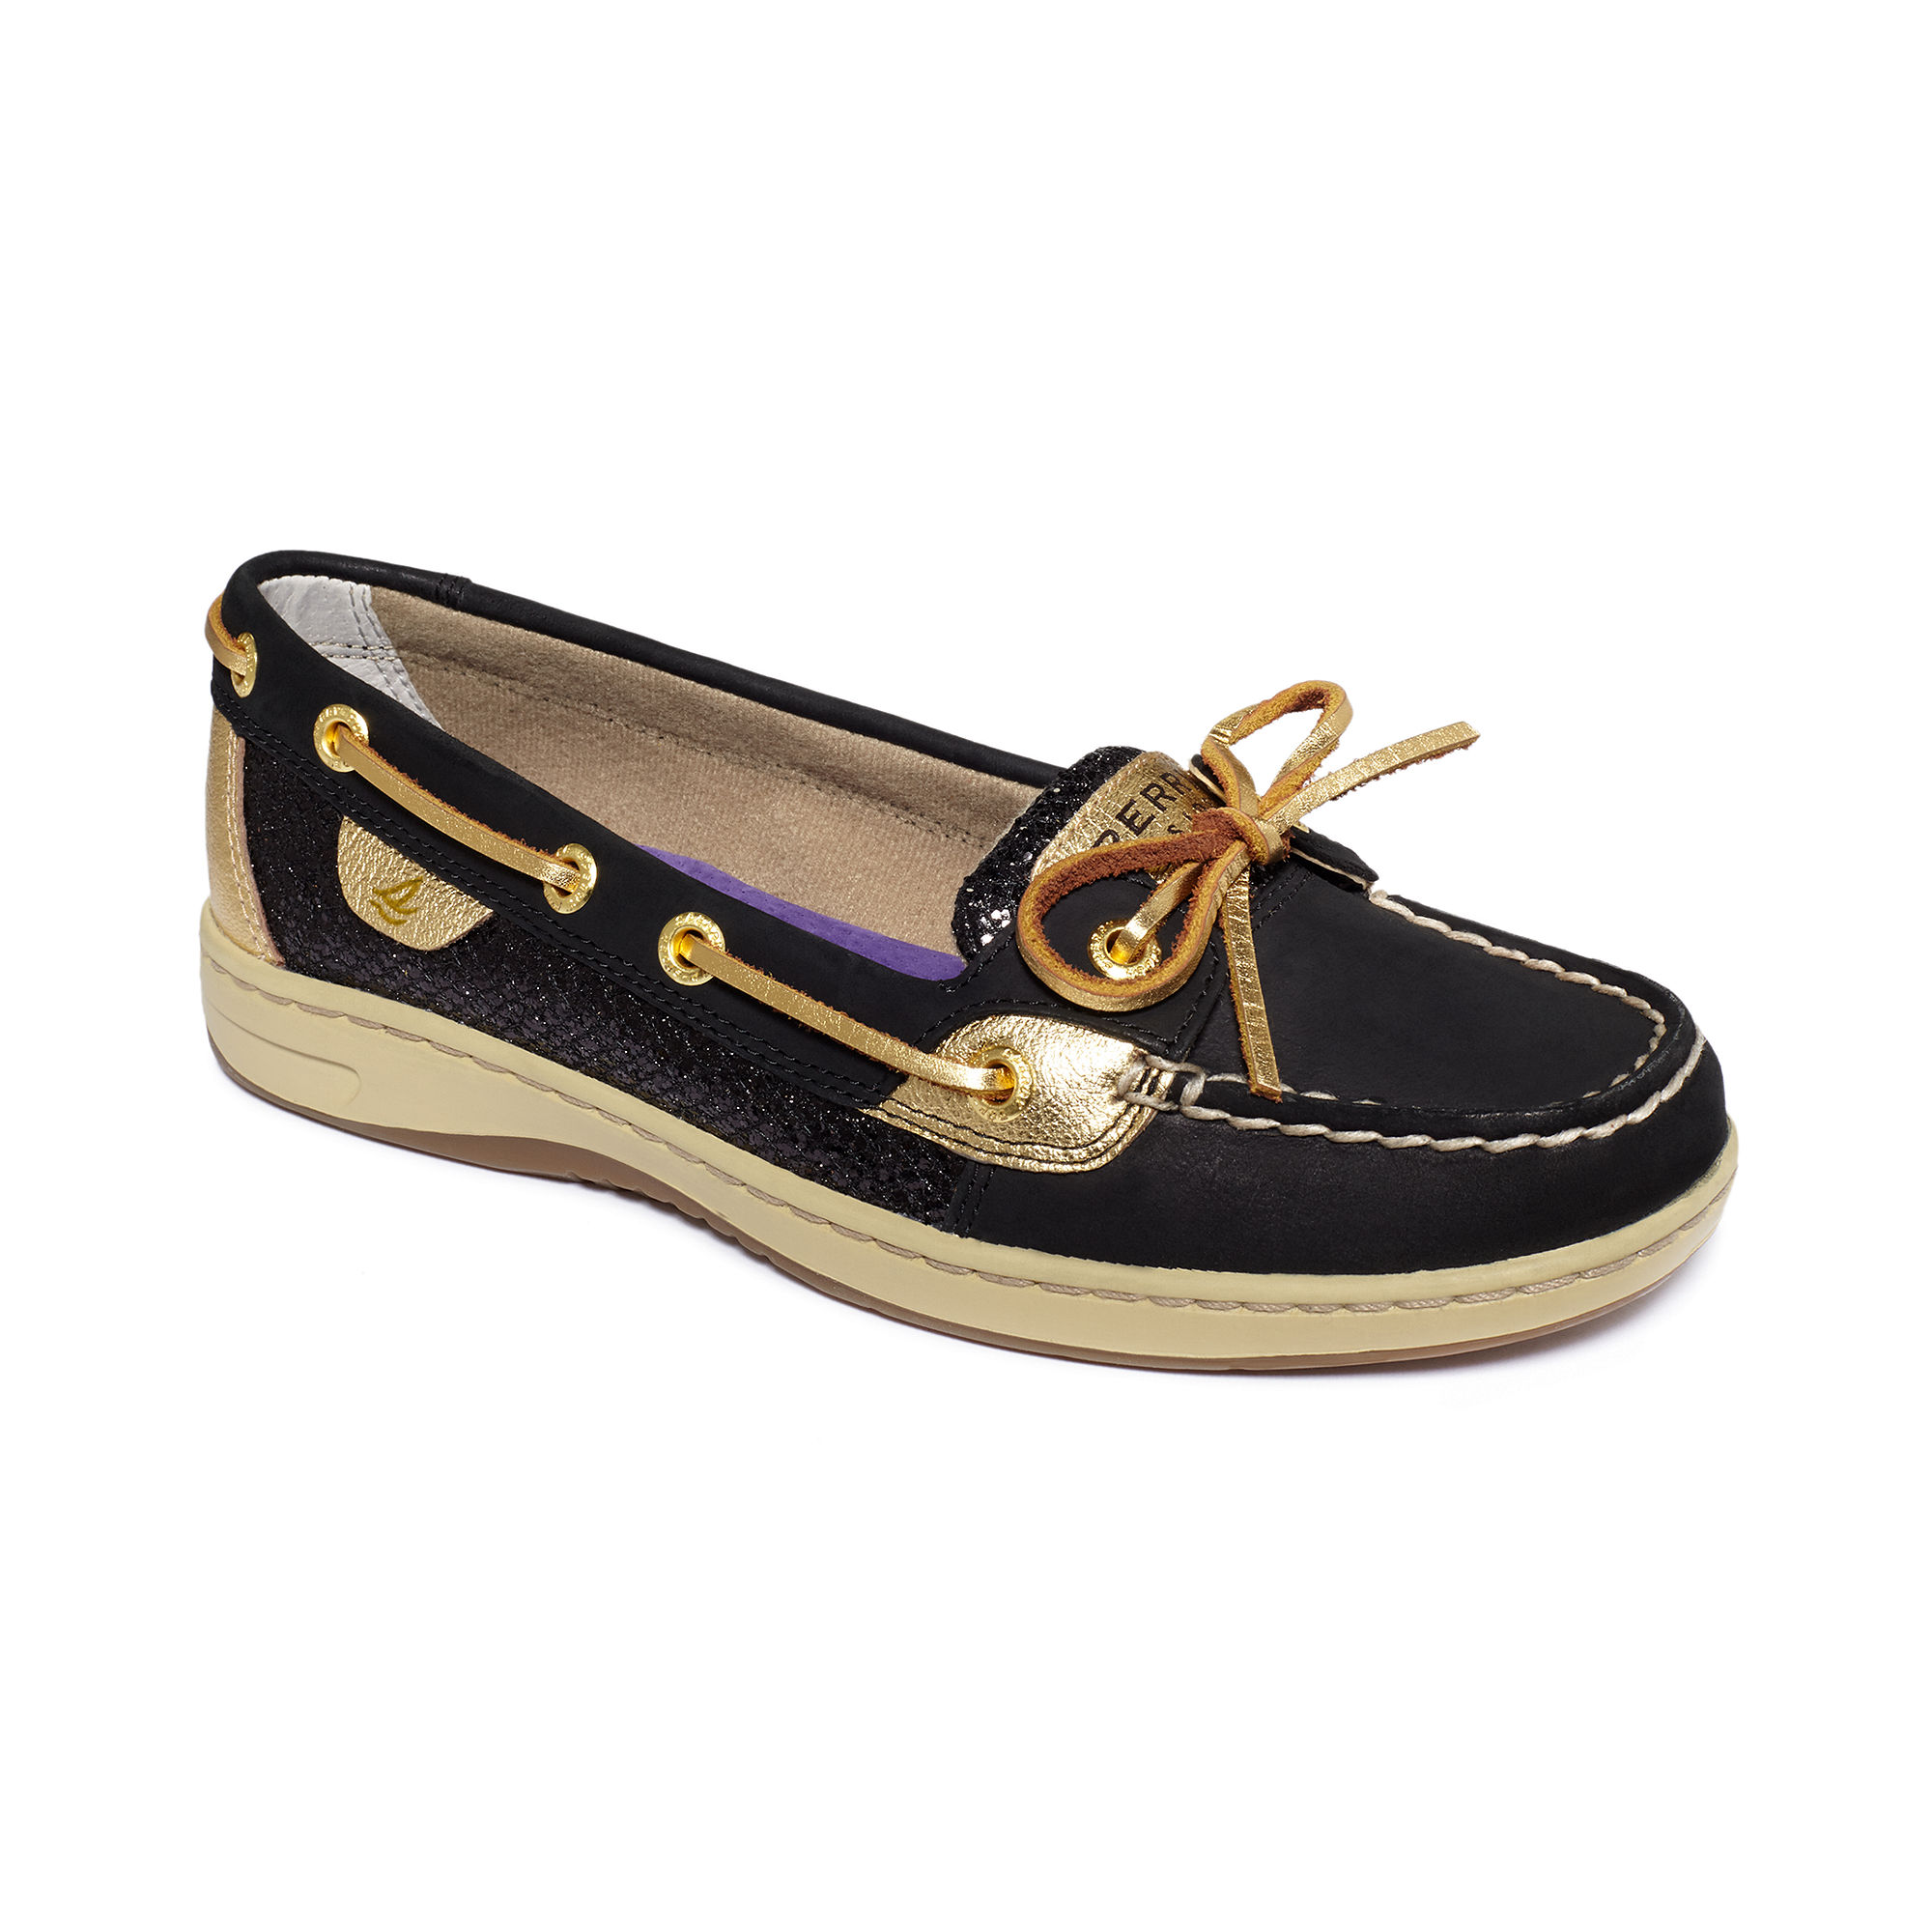 Sperry Black Glitter Shoes